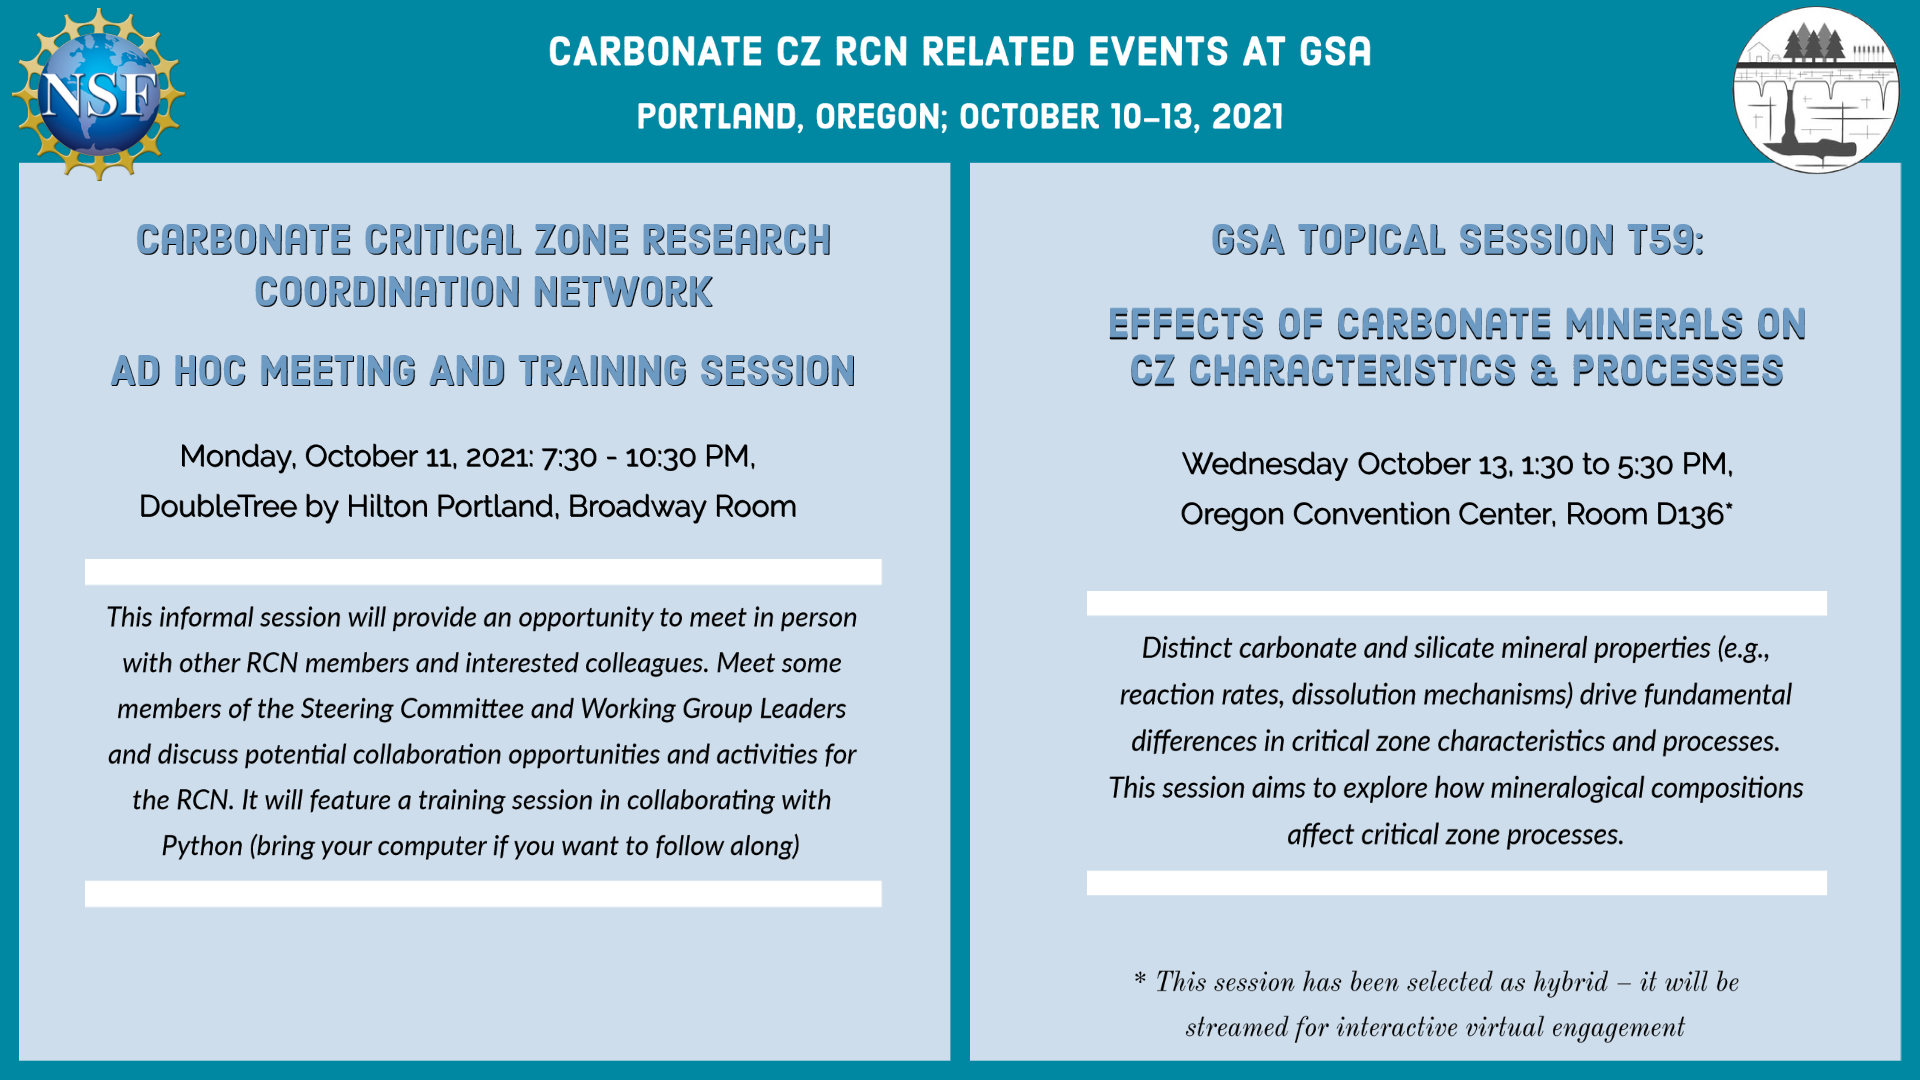 wo Carbonate RCN activities are being hosted at the GSA Meeting: 1) Ad hoc meeting and training session on Monday Oct 11 at 7:30PM (DoubleTree by Hilton, Broadway). Session will provide networking opportunities and a training session in collaborating with Python. 2) GSA topical session T59 on the effects of carbonate minerals on Critical Zone characteristics and processes, Wednesday Oct 13 at 1:30 pm (Oregon Convention Center, Room D136, with an option for hybrid participation)